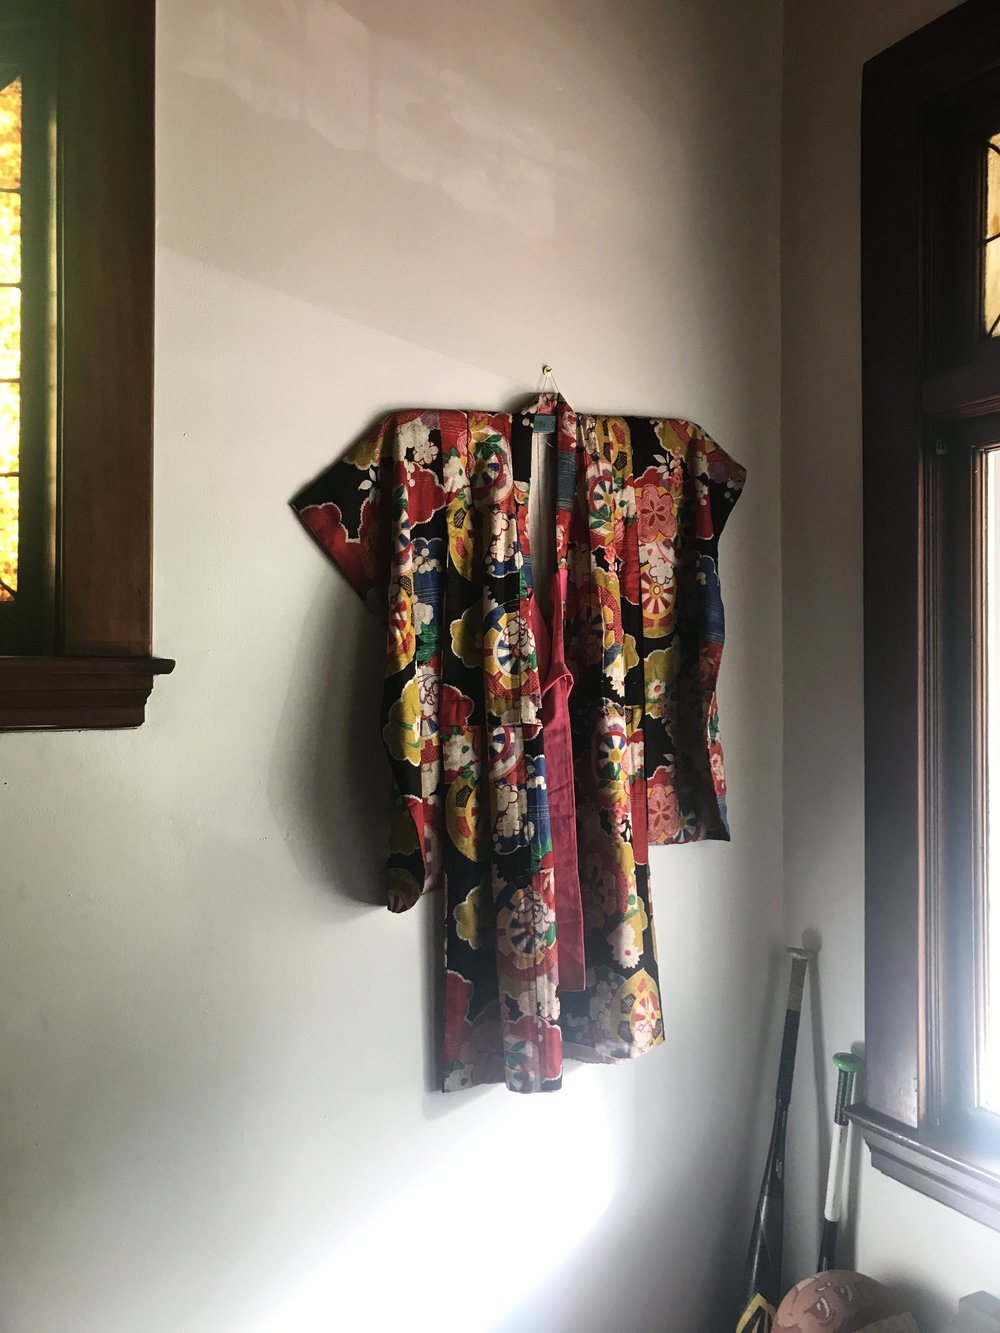 Theresa has two sons, so naturally there are baseball bats and other signs of life displayed amongst treasures like this kimono from the family's year living in Japan.